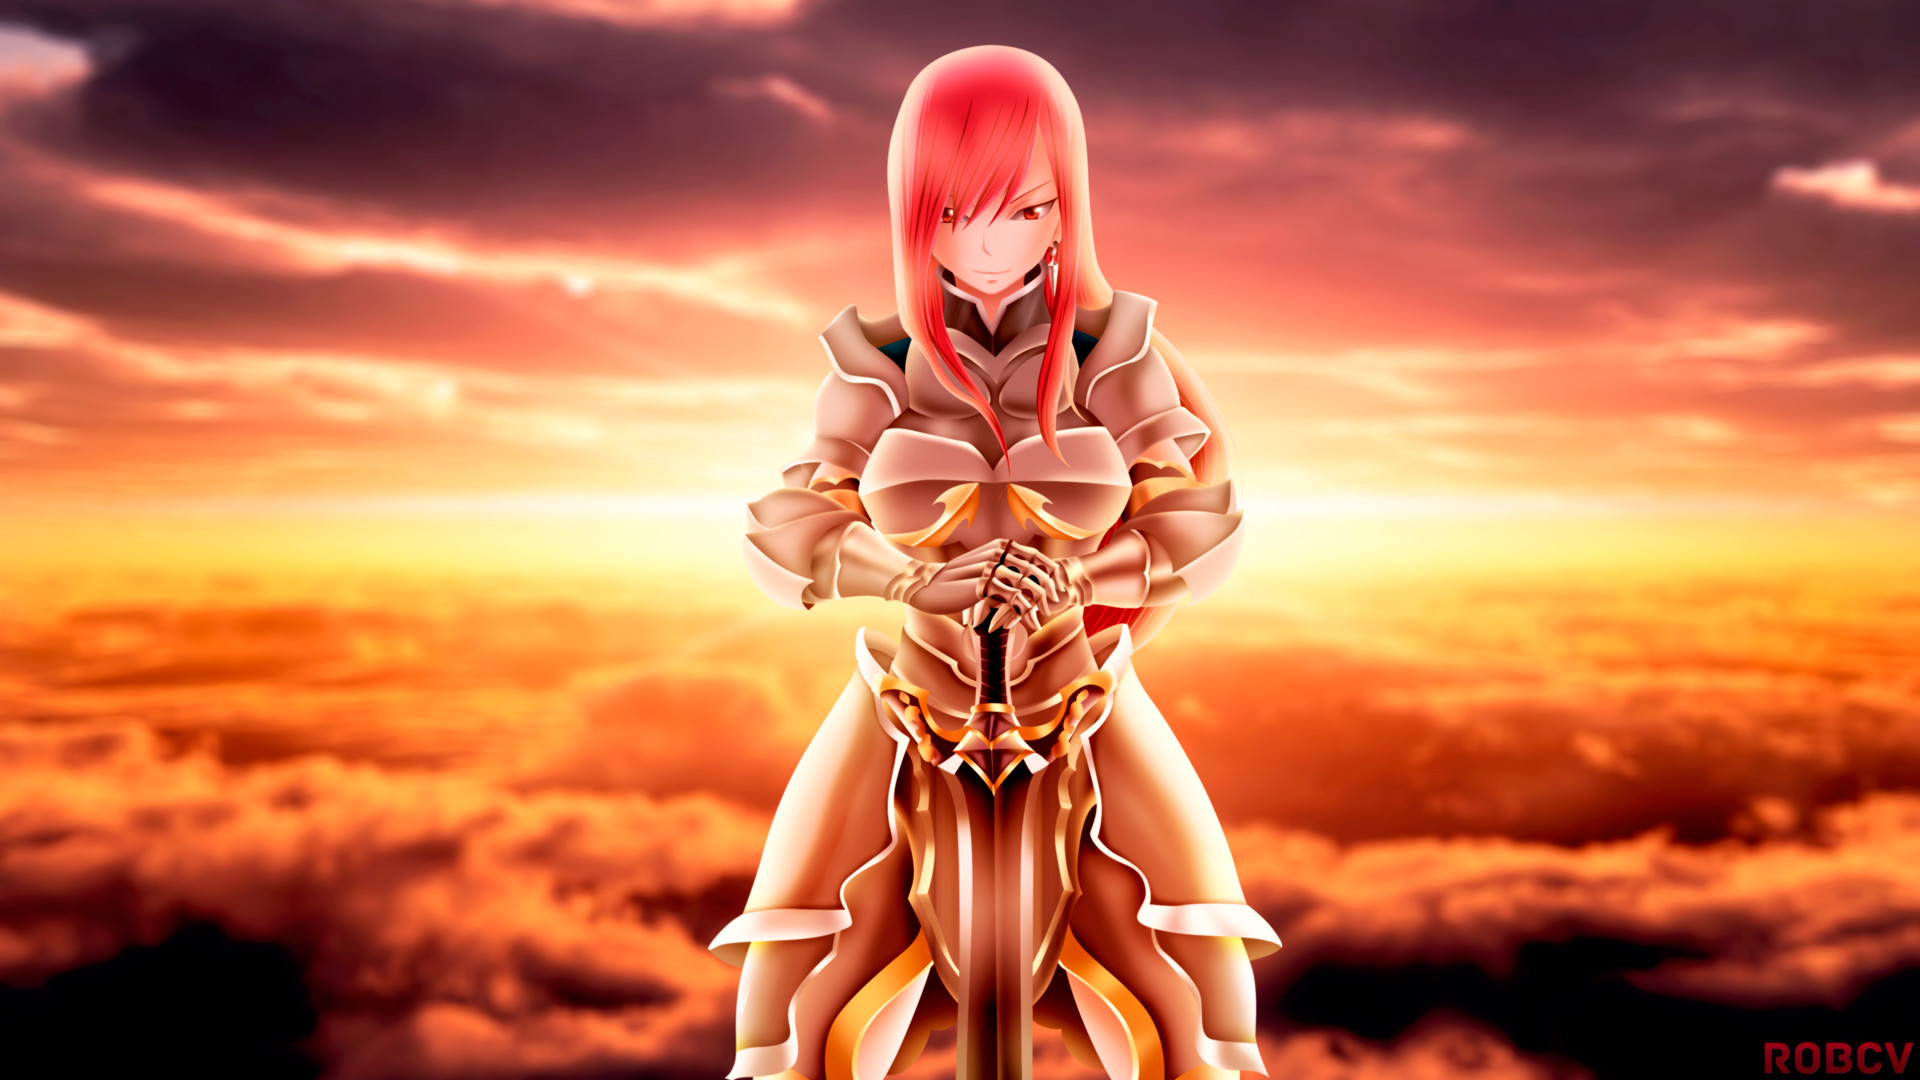 HD Free Erza Scarlet Backgrounds.